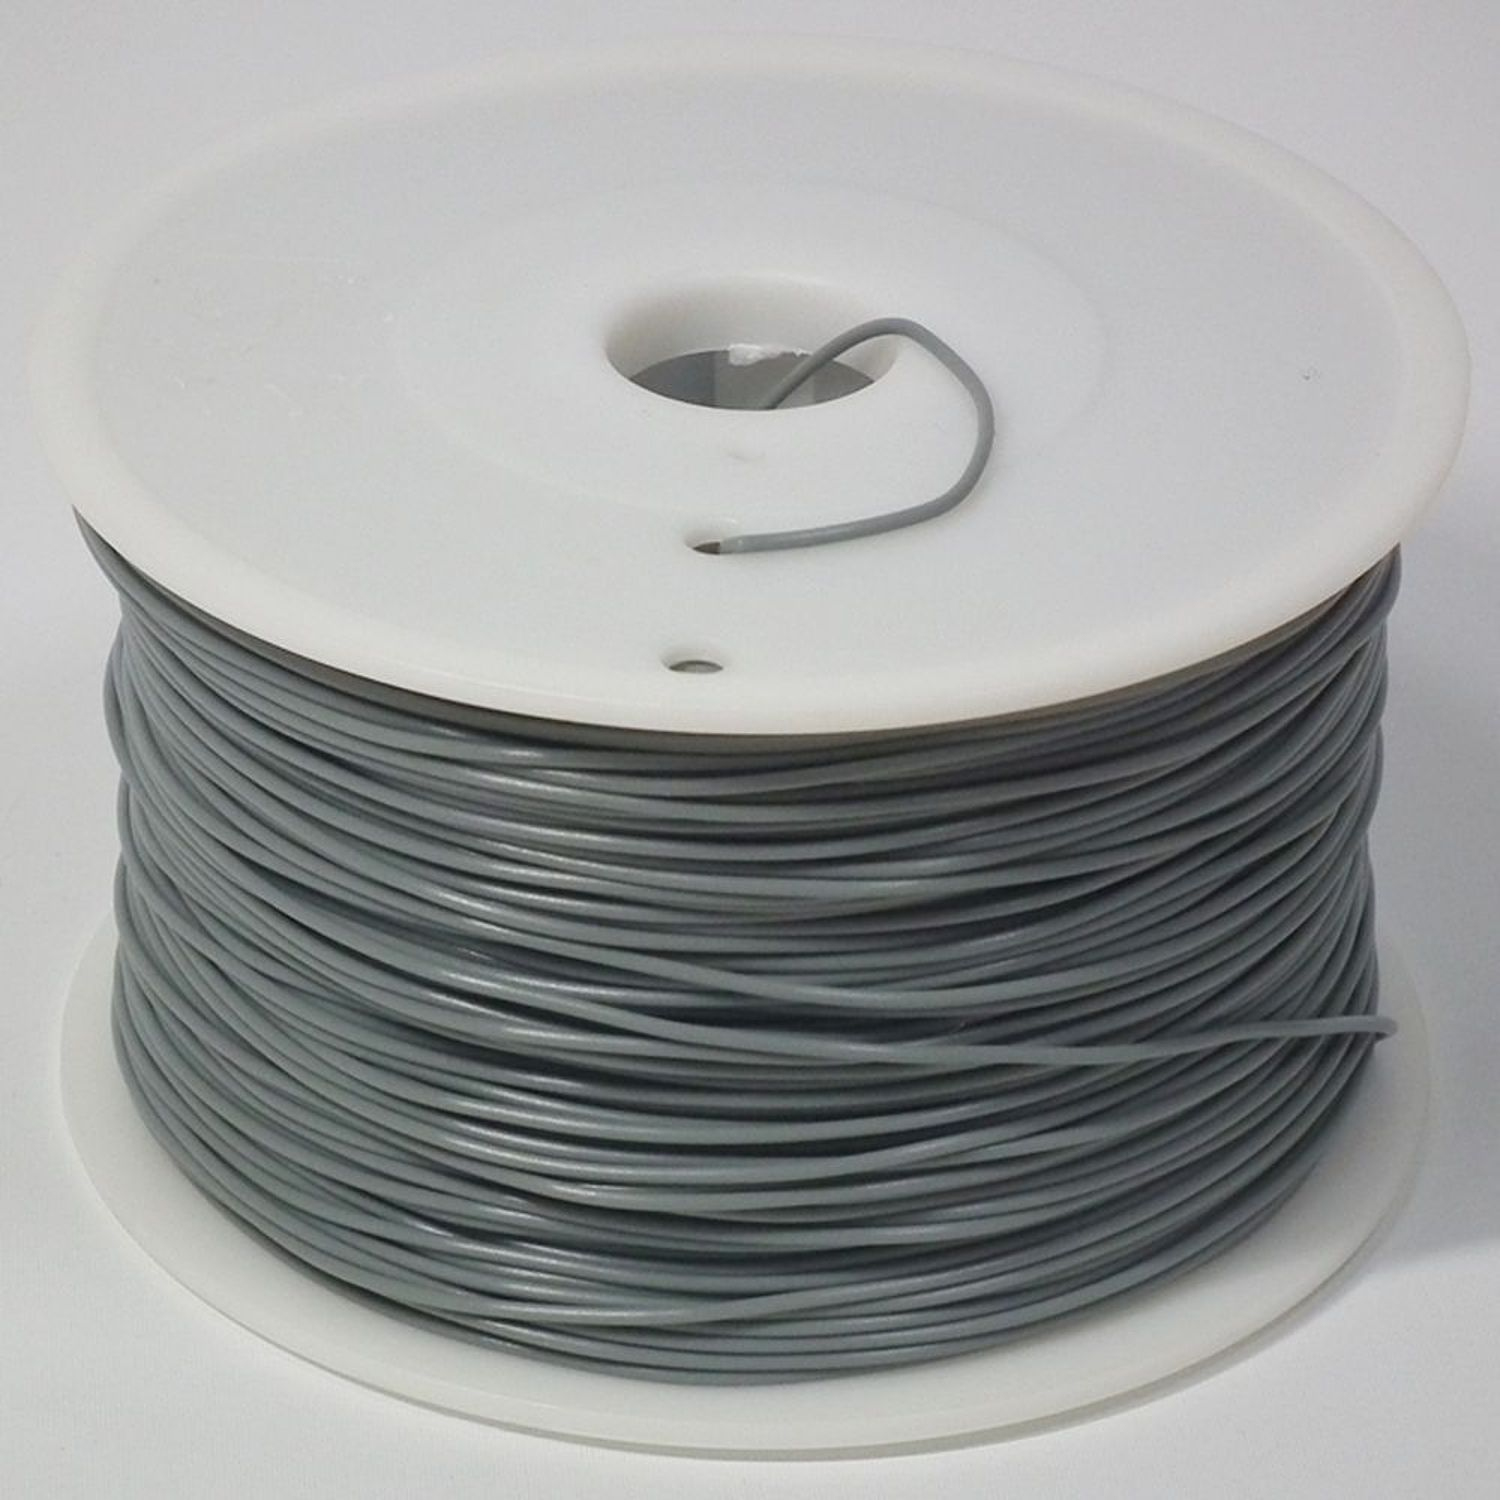 Insten 3D Filament 1.75mm PLA 1kg spool - Grey (Solid color) for 3D Printing (N3D-PLA-GY)